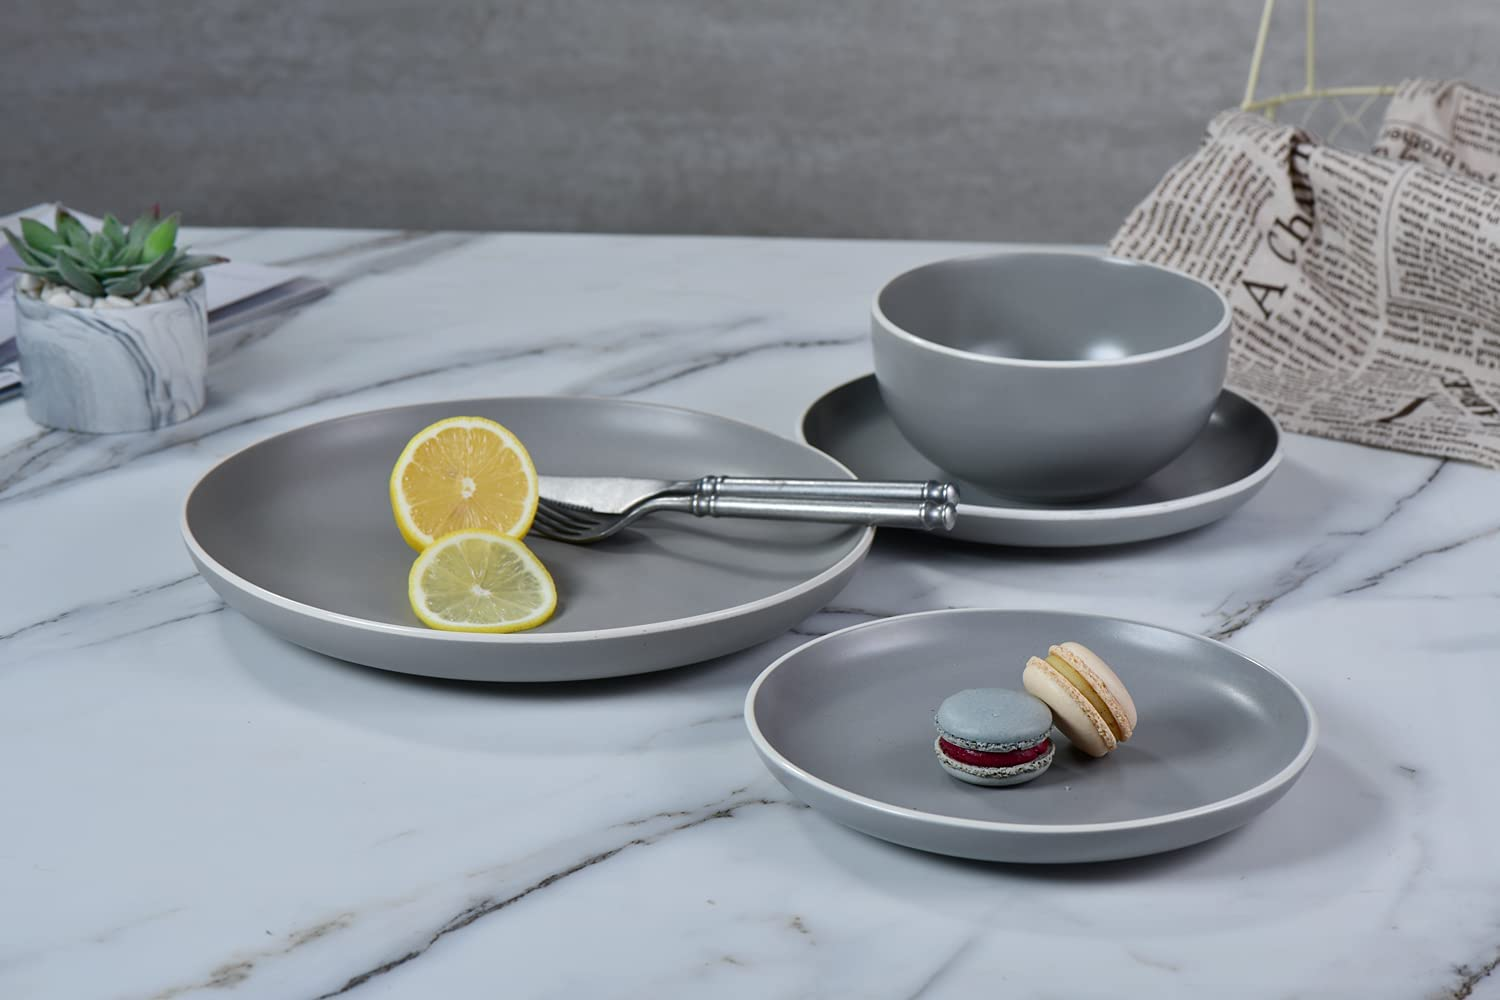 Famiware Macaron Dinnerware Set, 16 Piece Dishes Plates and Gray Matte